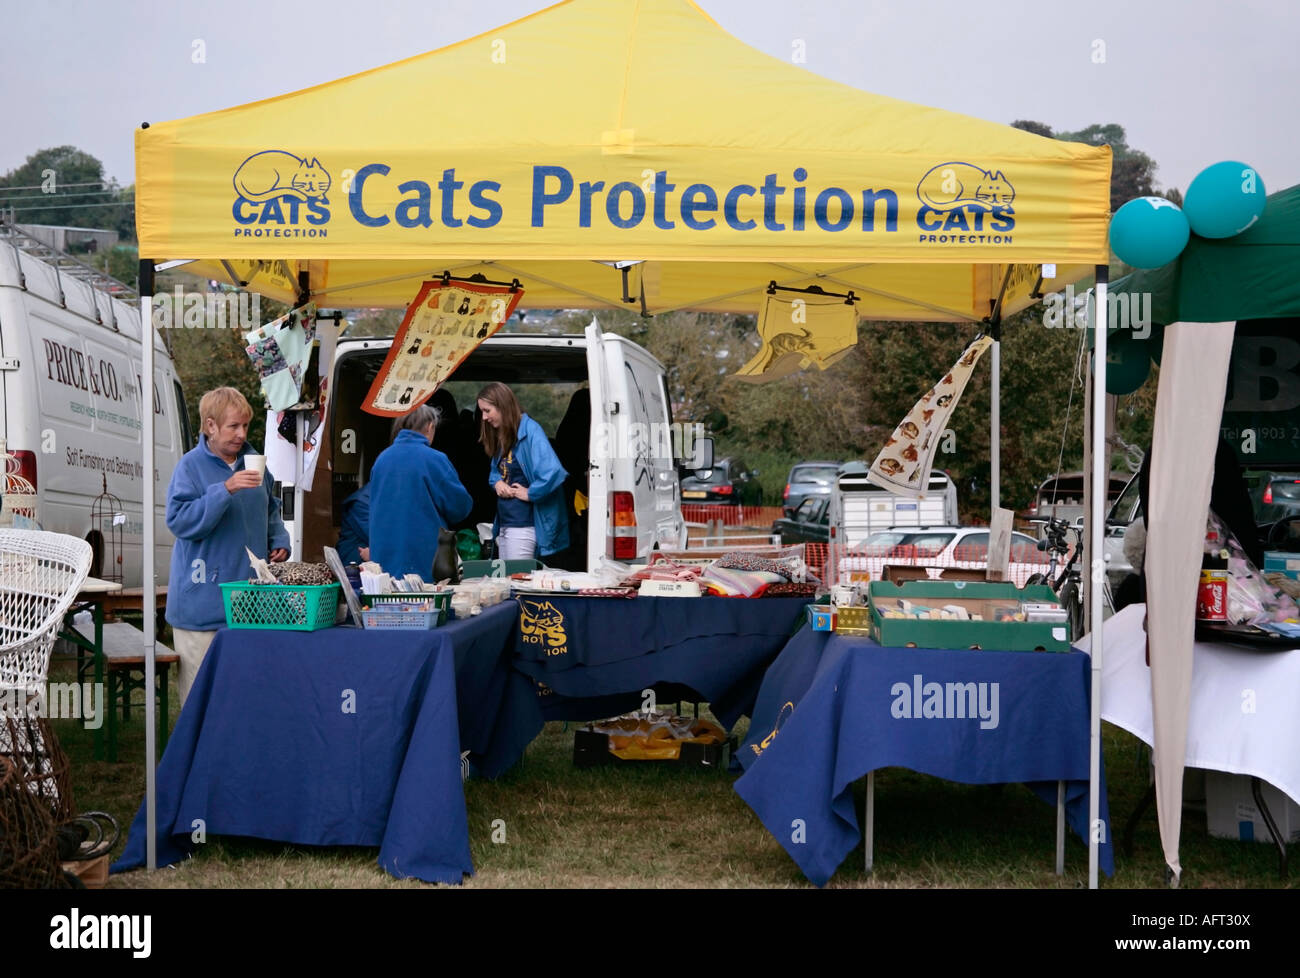 Cats Protection stand at village fair. England, UK - Stock Image